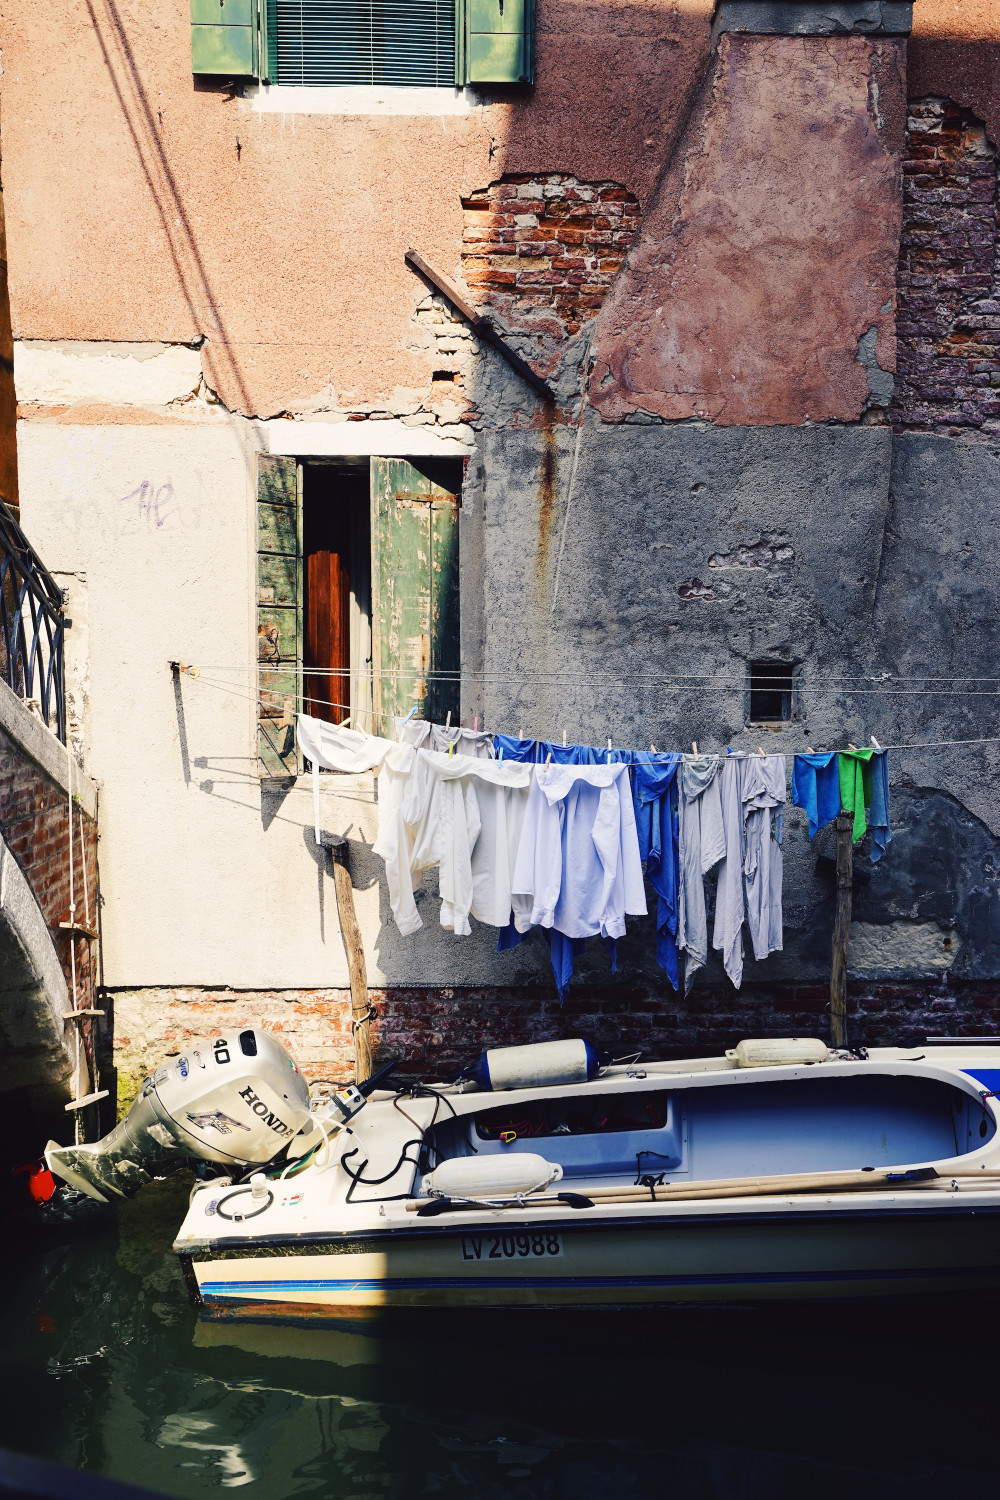 venice-laundry-boat-dante-vincent-photography